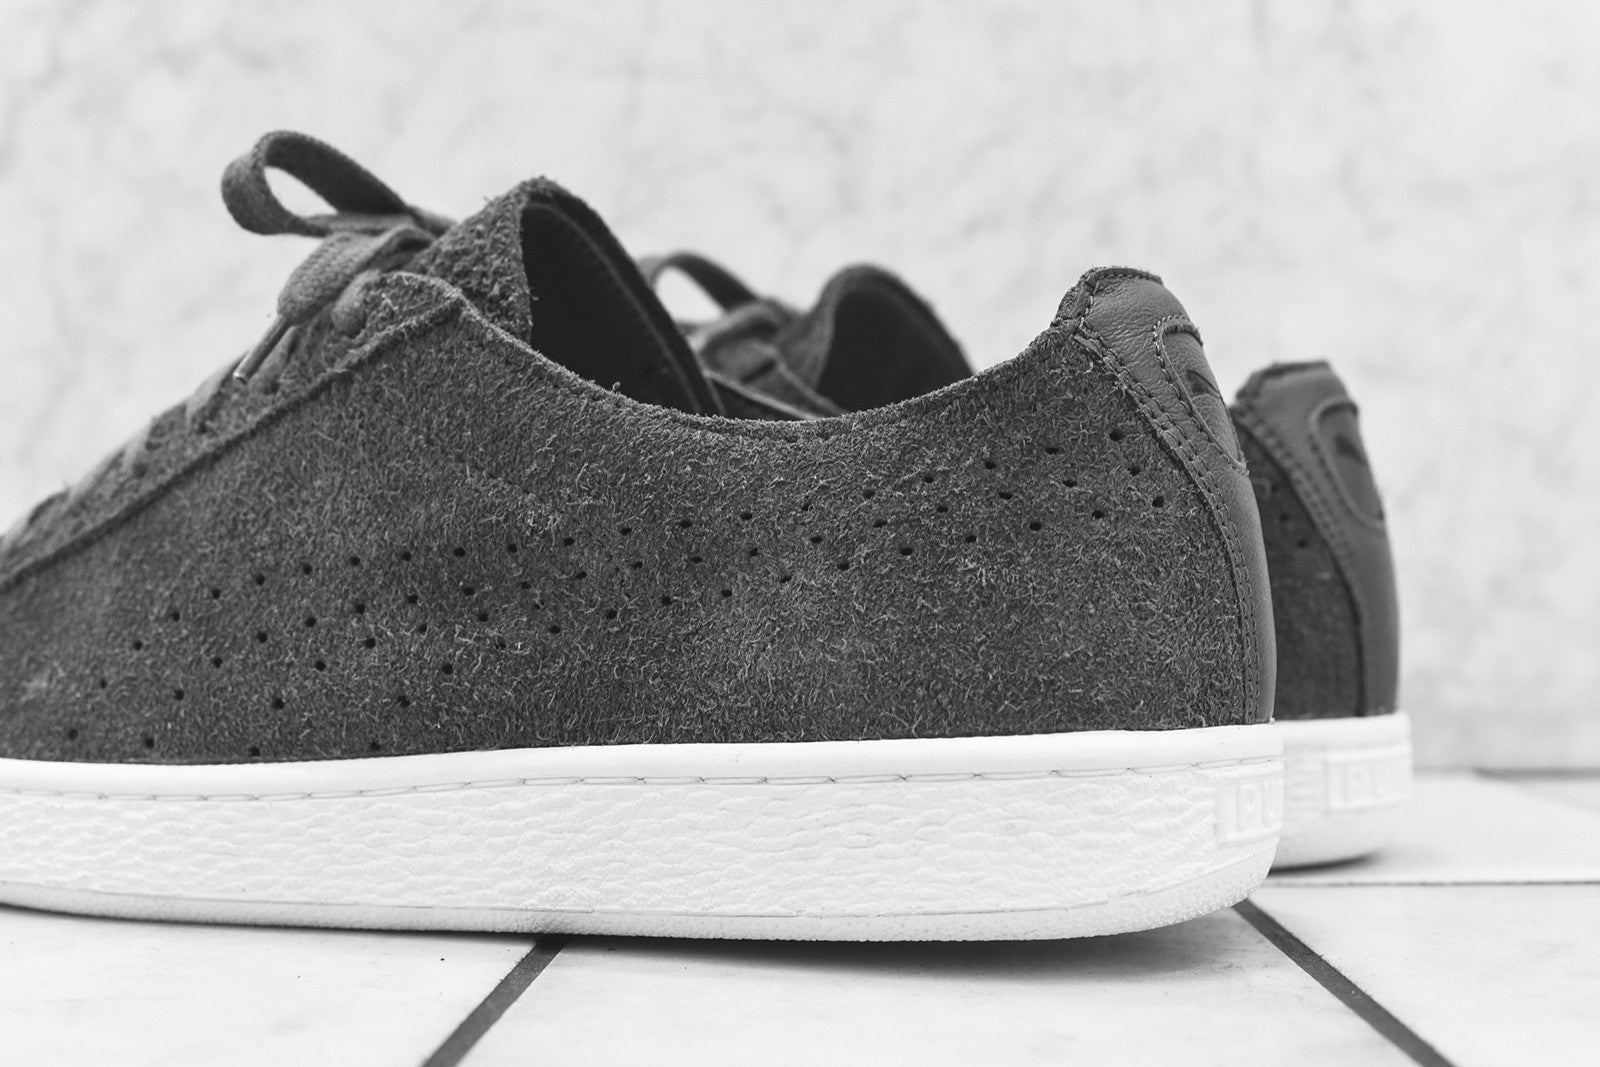 Puma x Stampd States Decon - Dark Grey / White